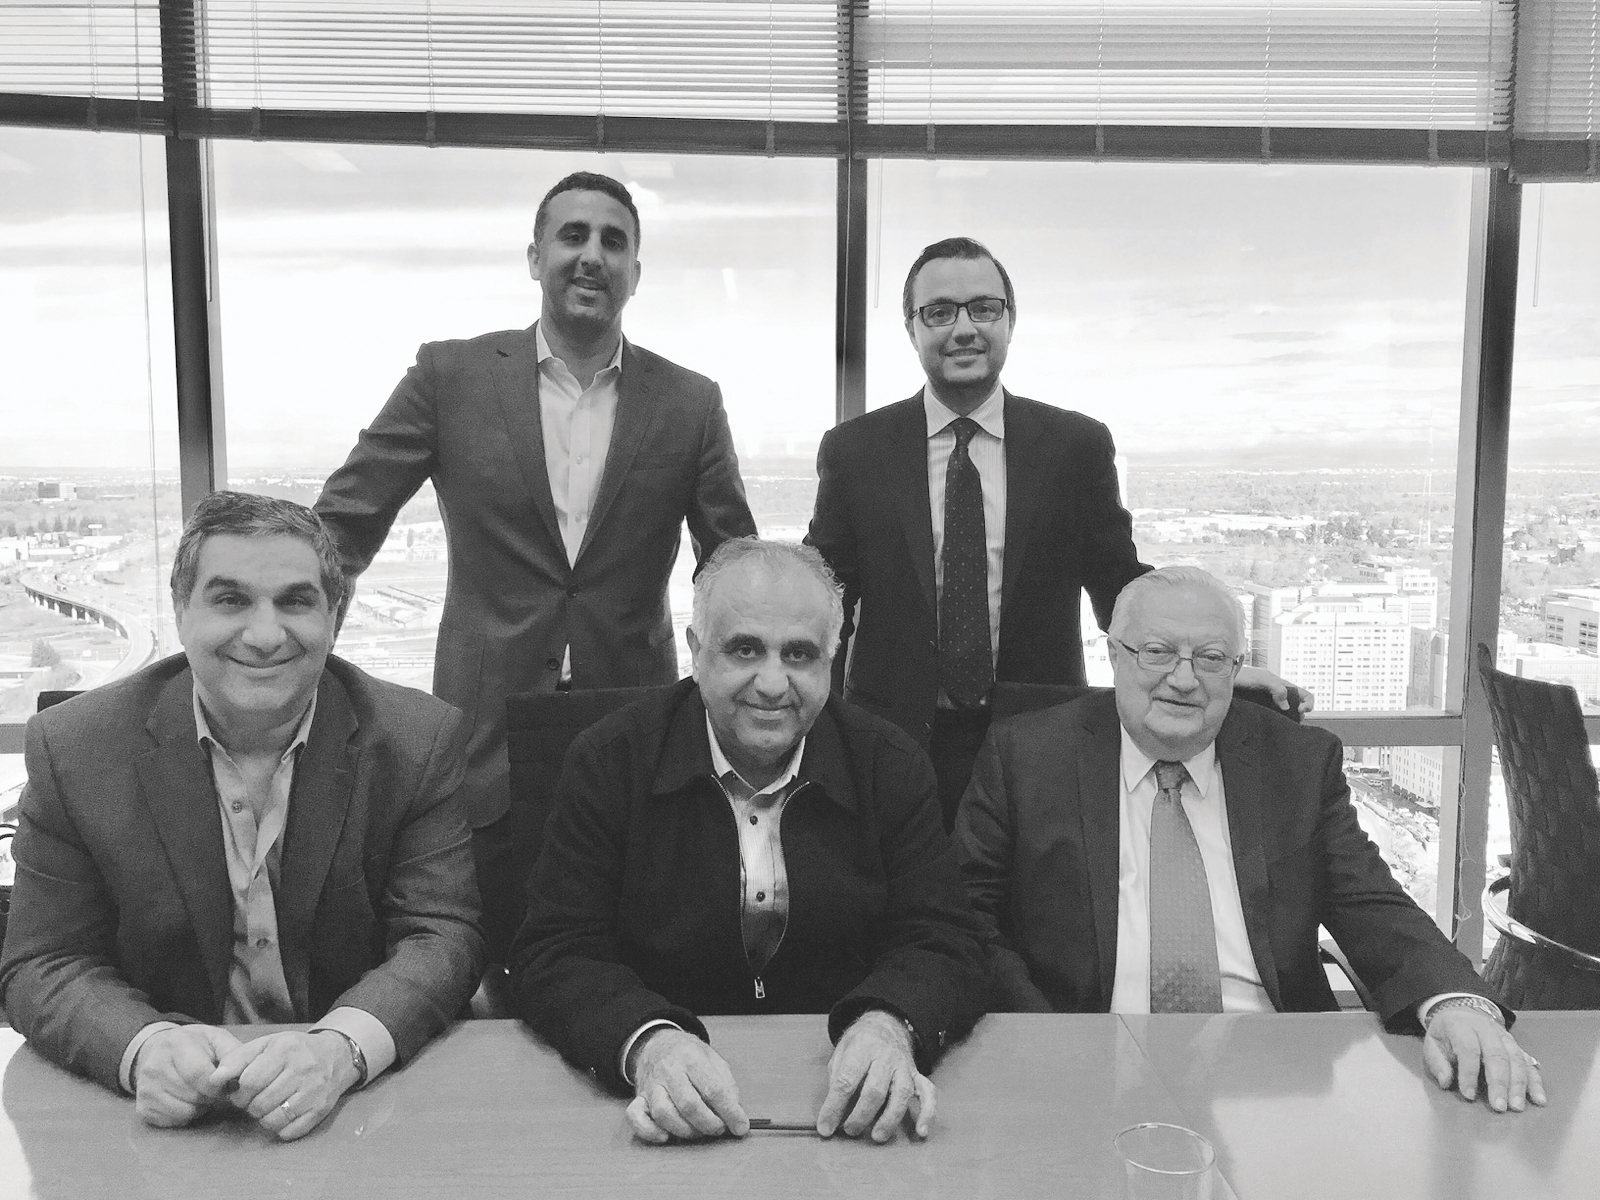 From left: Developers Steve Lebastchi, Bay Miry, David Miry, Ali Youssefi and Cyrus Youssefi in December 2014 after signing the closing documents for The Hardin. (Photo courtesy of Bay Miry)